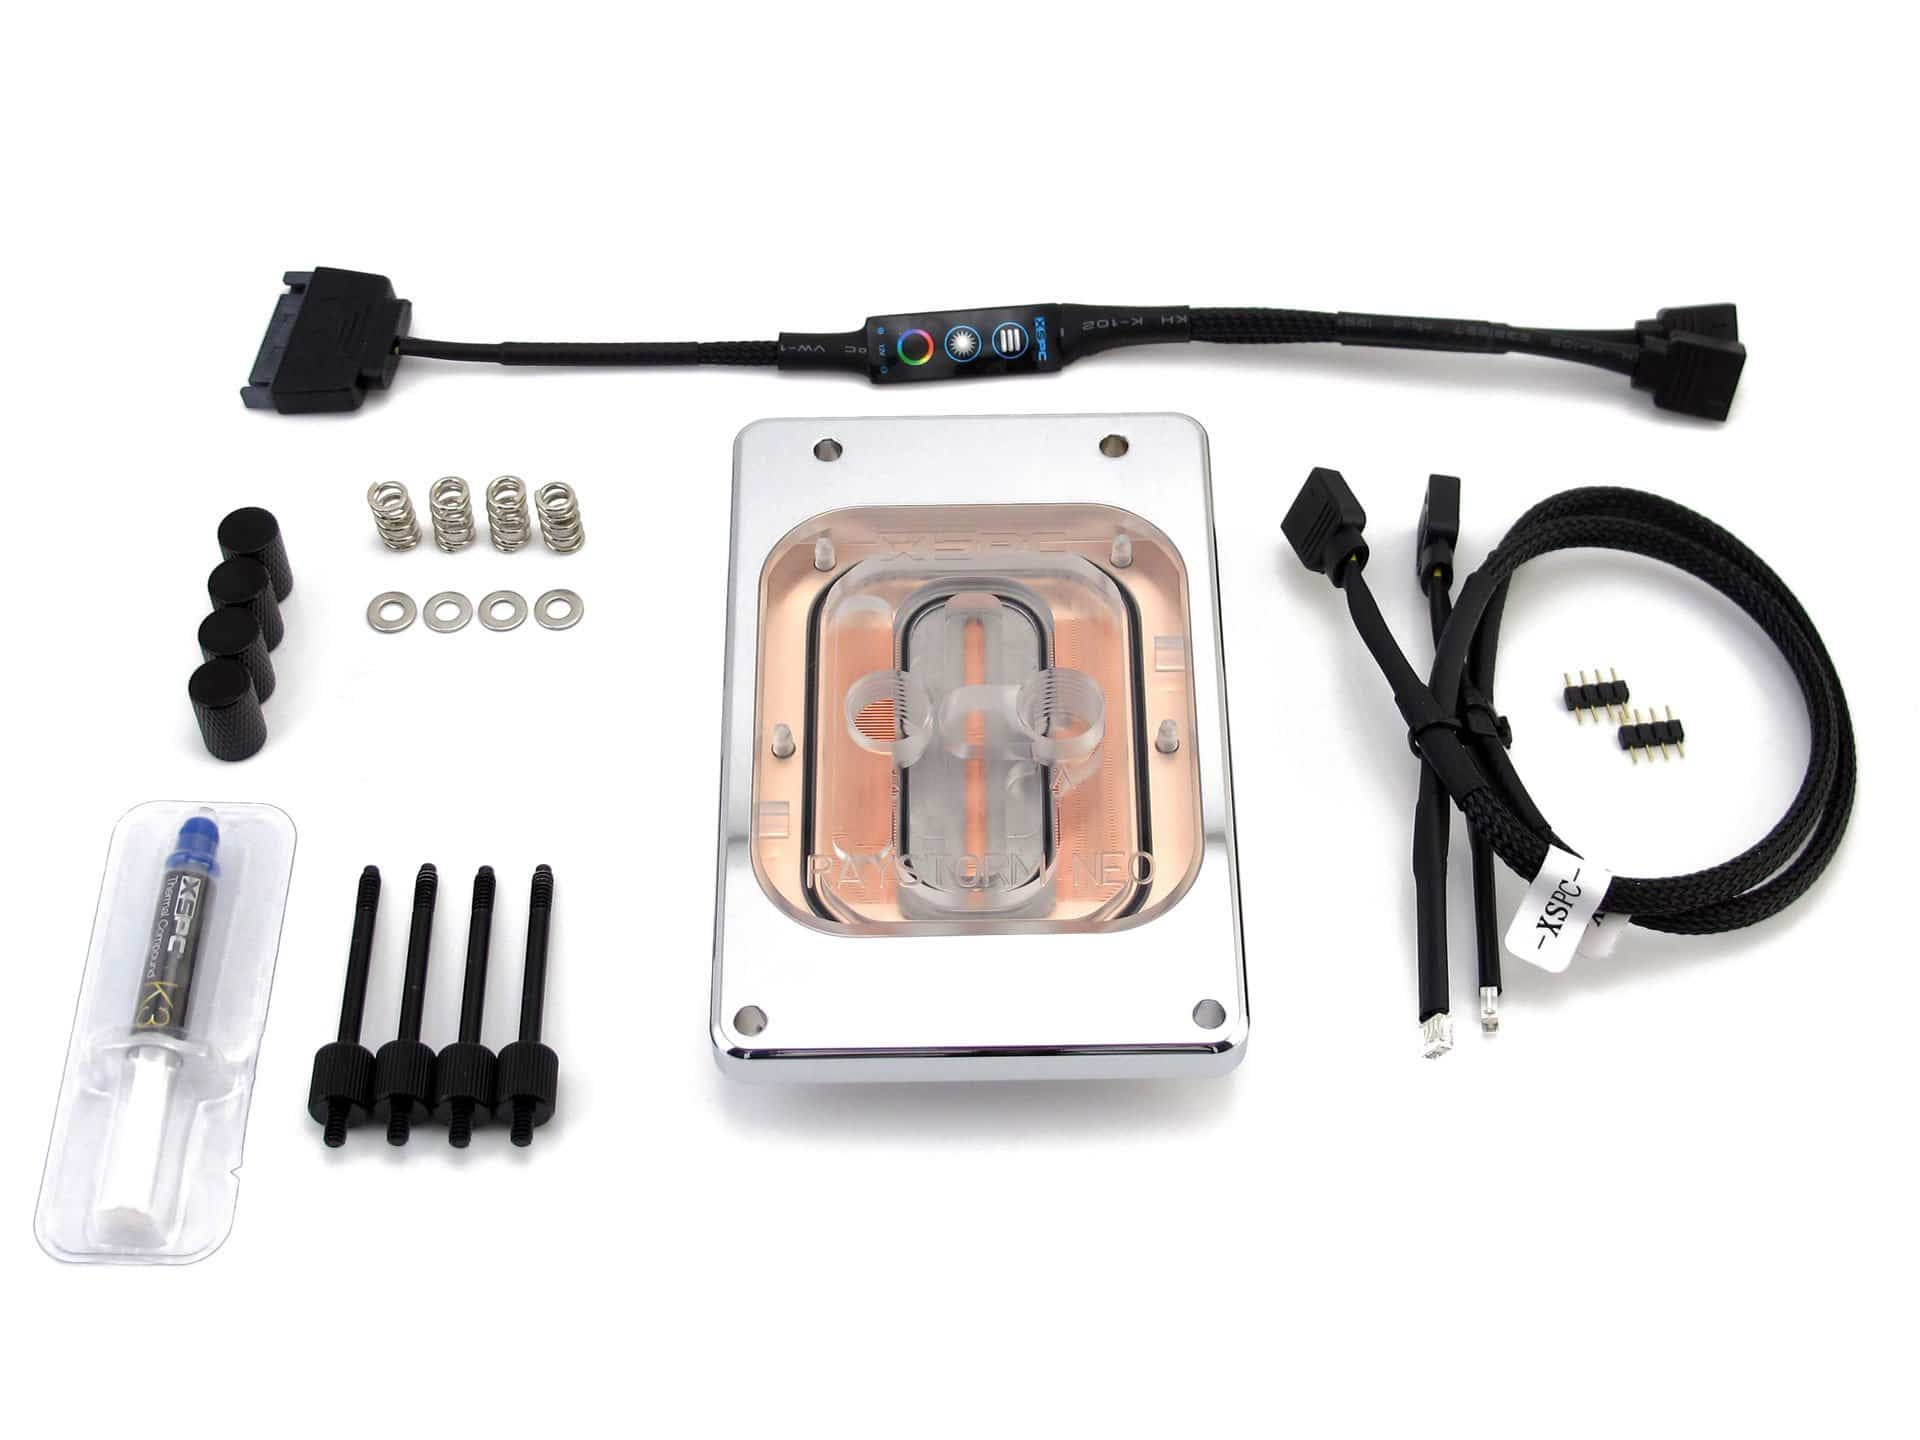 Image 7 : XSPC Raystorm Neo : le plus gros waterblock pour Threadripper